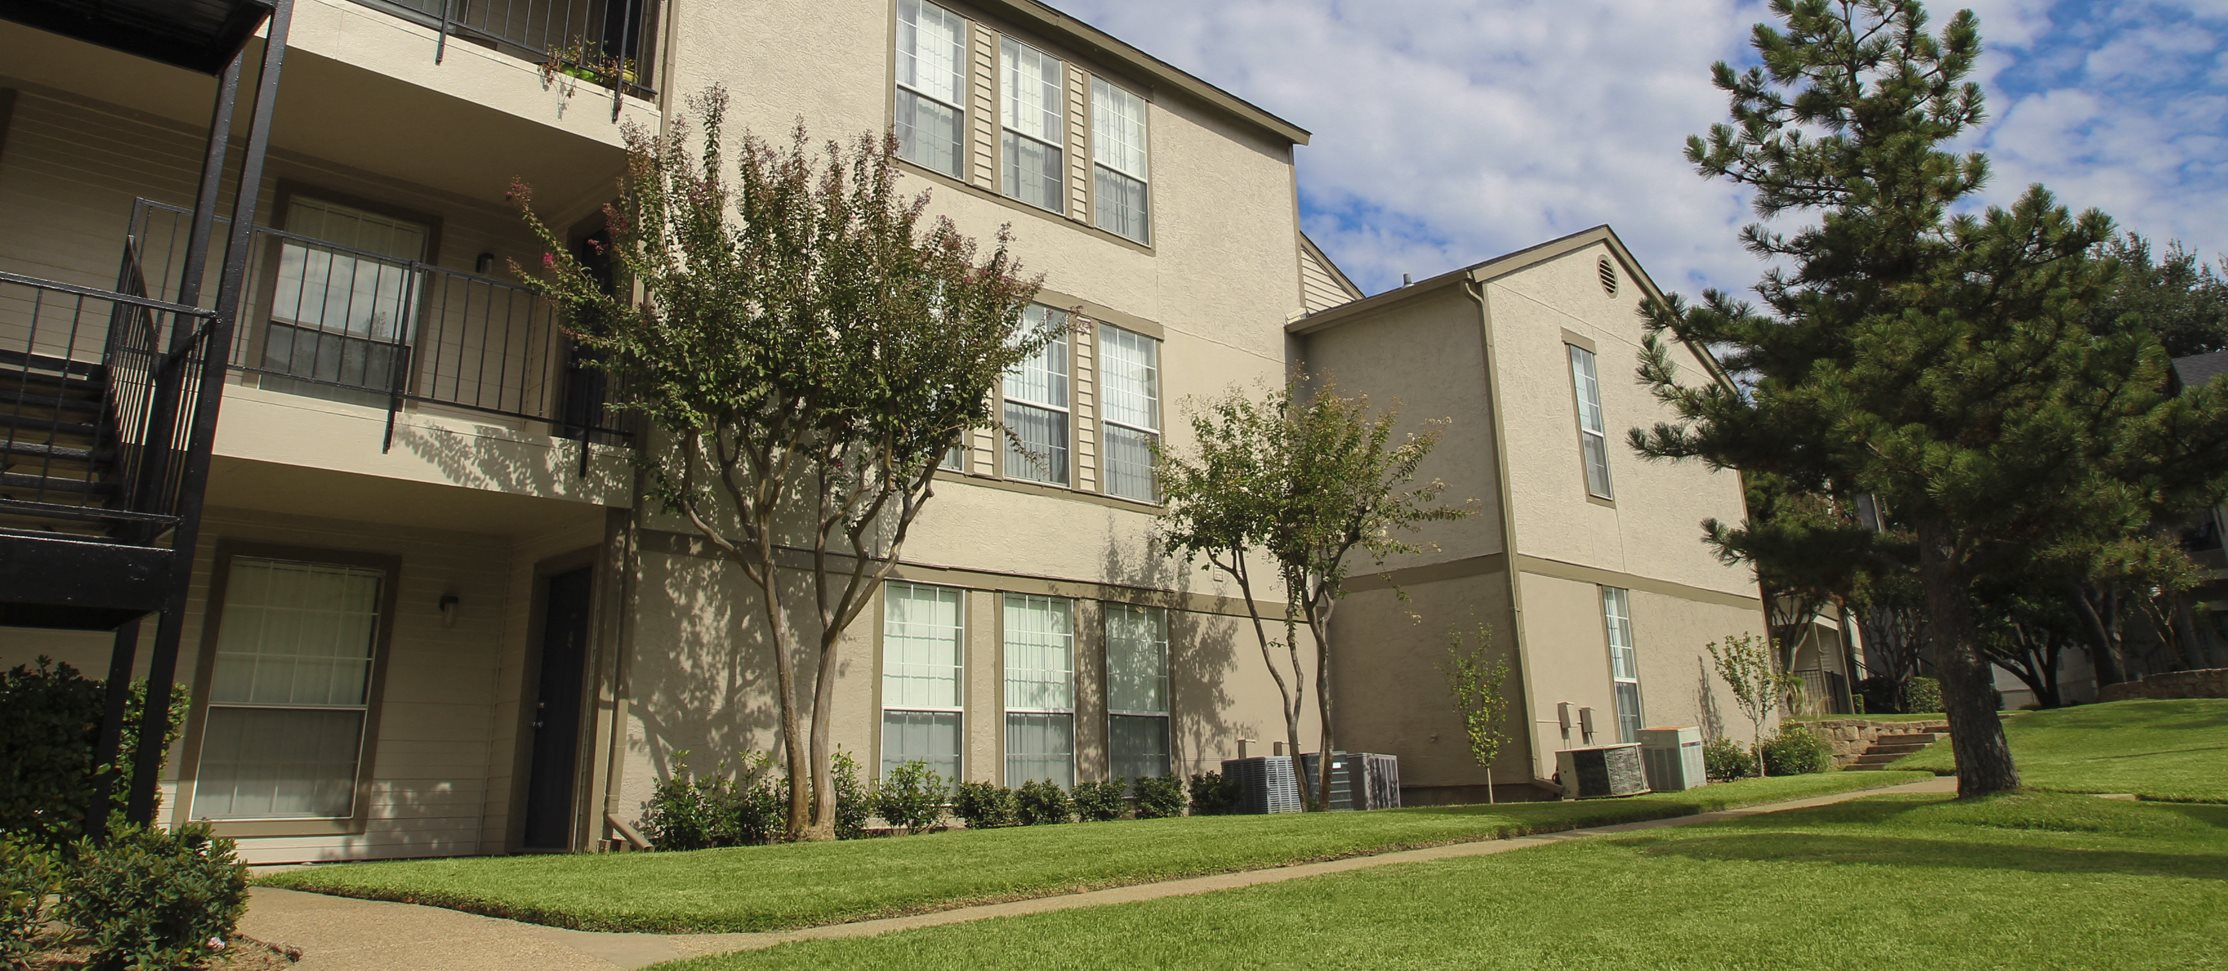 This is a photo of a building exterior/the grounds at The Boulders Apartments in Garland, TX.